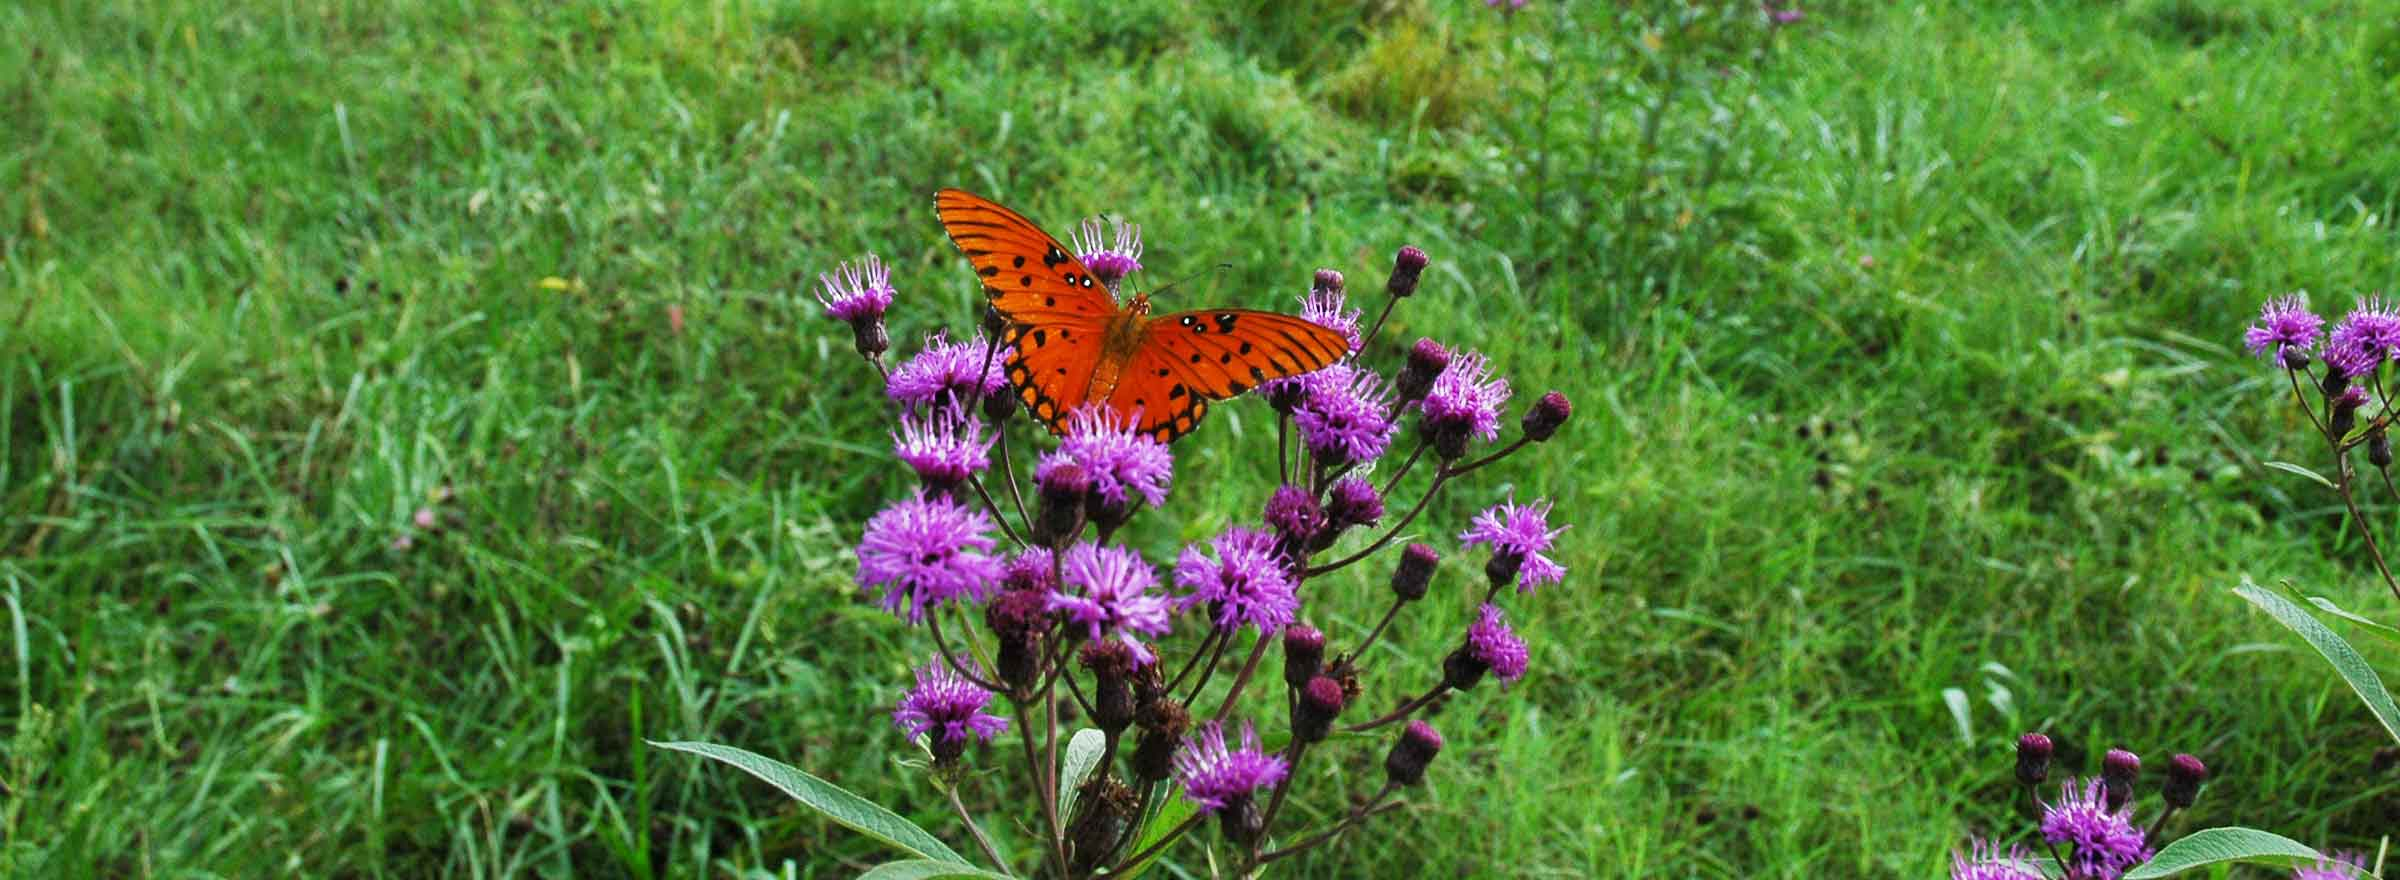 a butterfly alights on a plant on land that the nonprofit Mainspring has protected